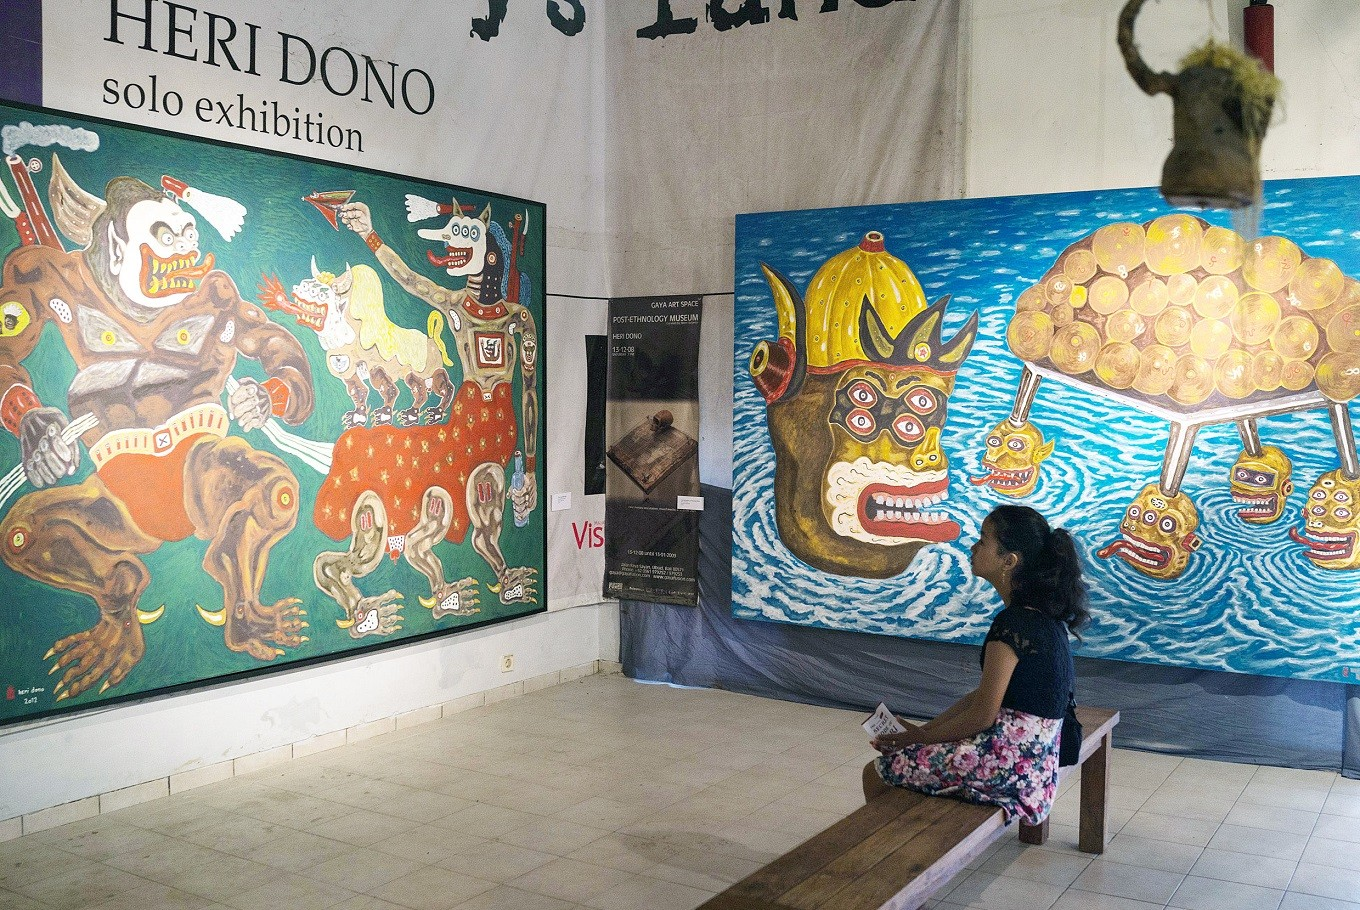 Viewing art: A visitor contemplates a solo exhibition by artist Heri Dono at his studio in Yogyakarta.